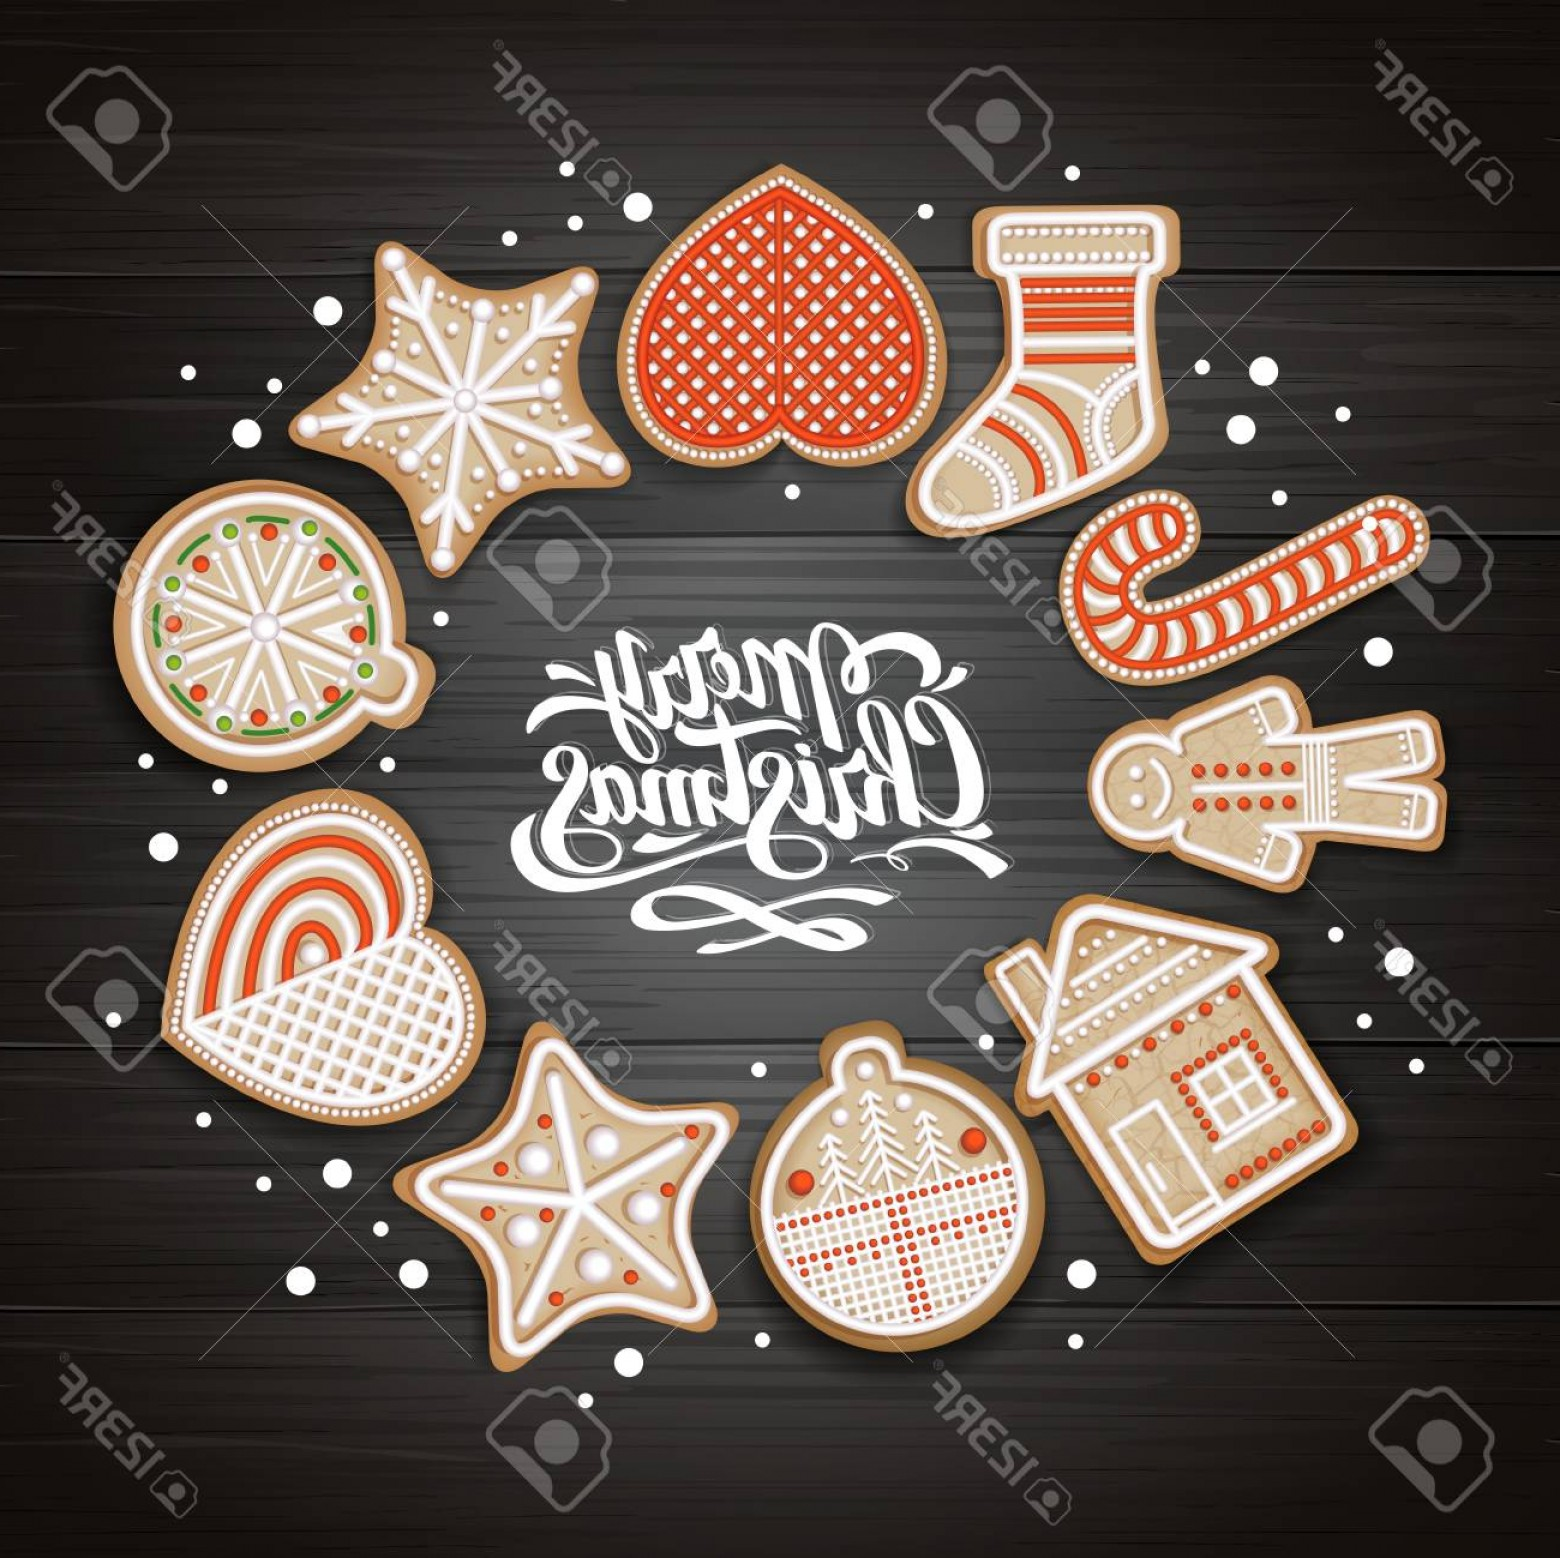 Vectors Holiday Baking: Photostock Vector Top View Of Merry Christmas Concept Design Holiday Cookies On Wooden Background Christmas Food